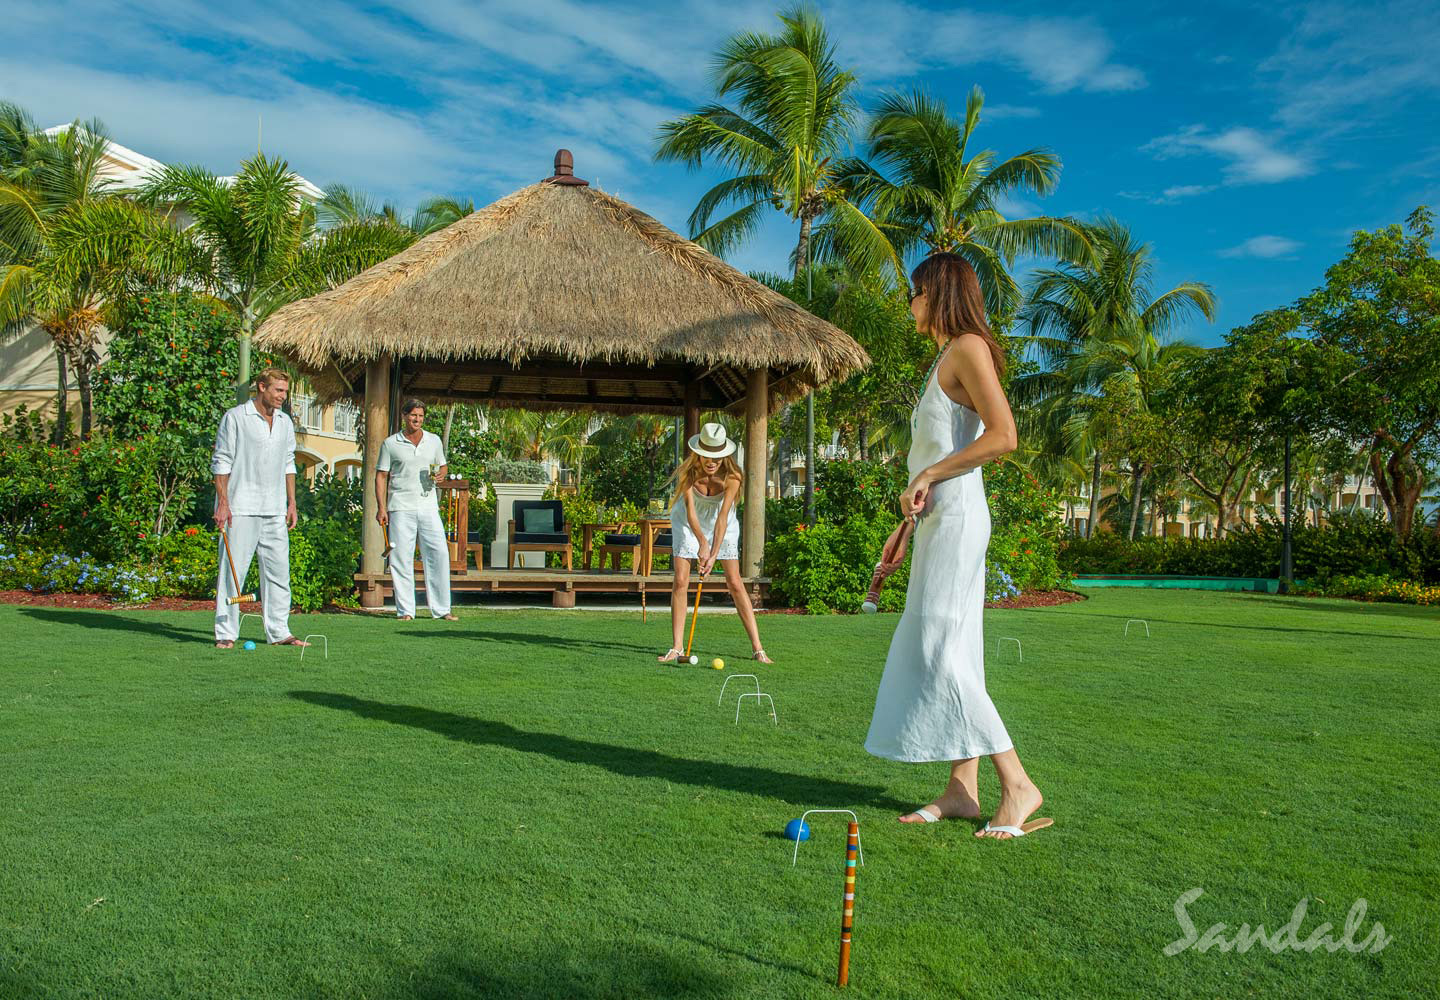 Travel Agency All-Inclusive Resort Sandals Emerald Bay 079